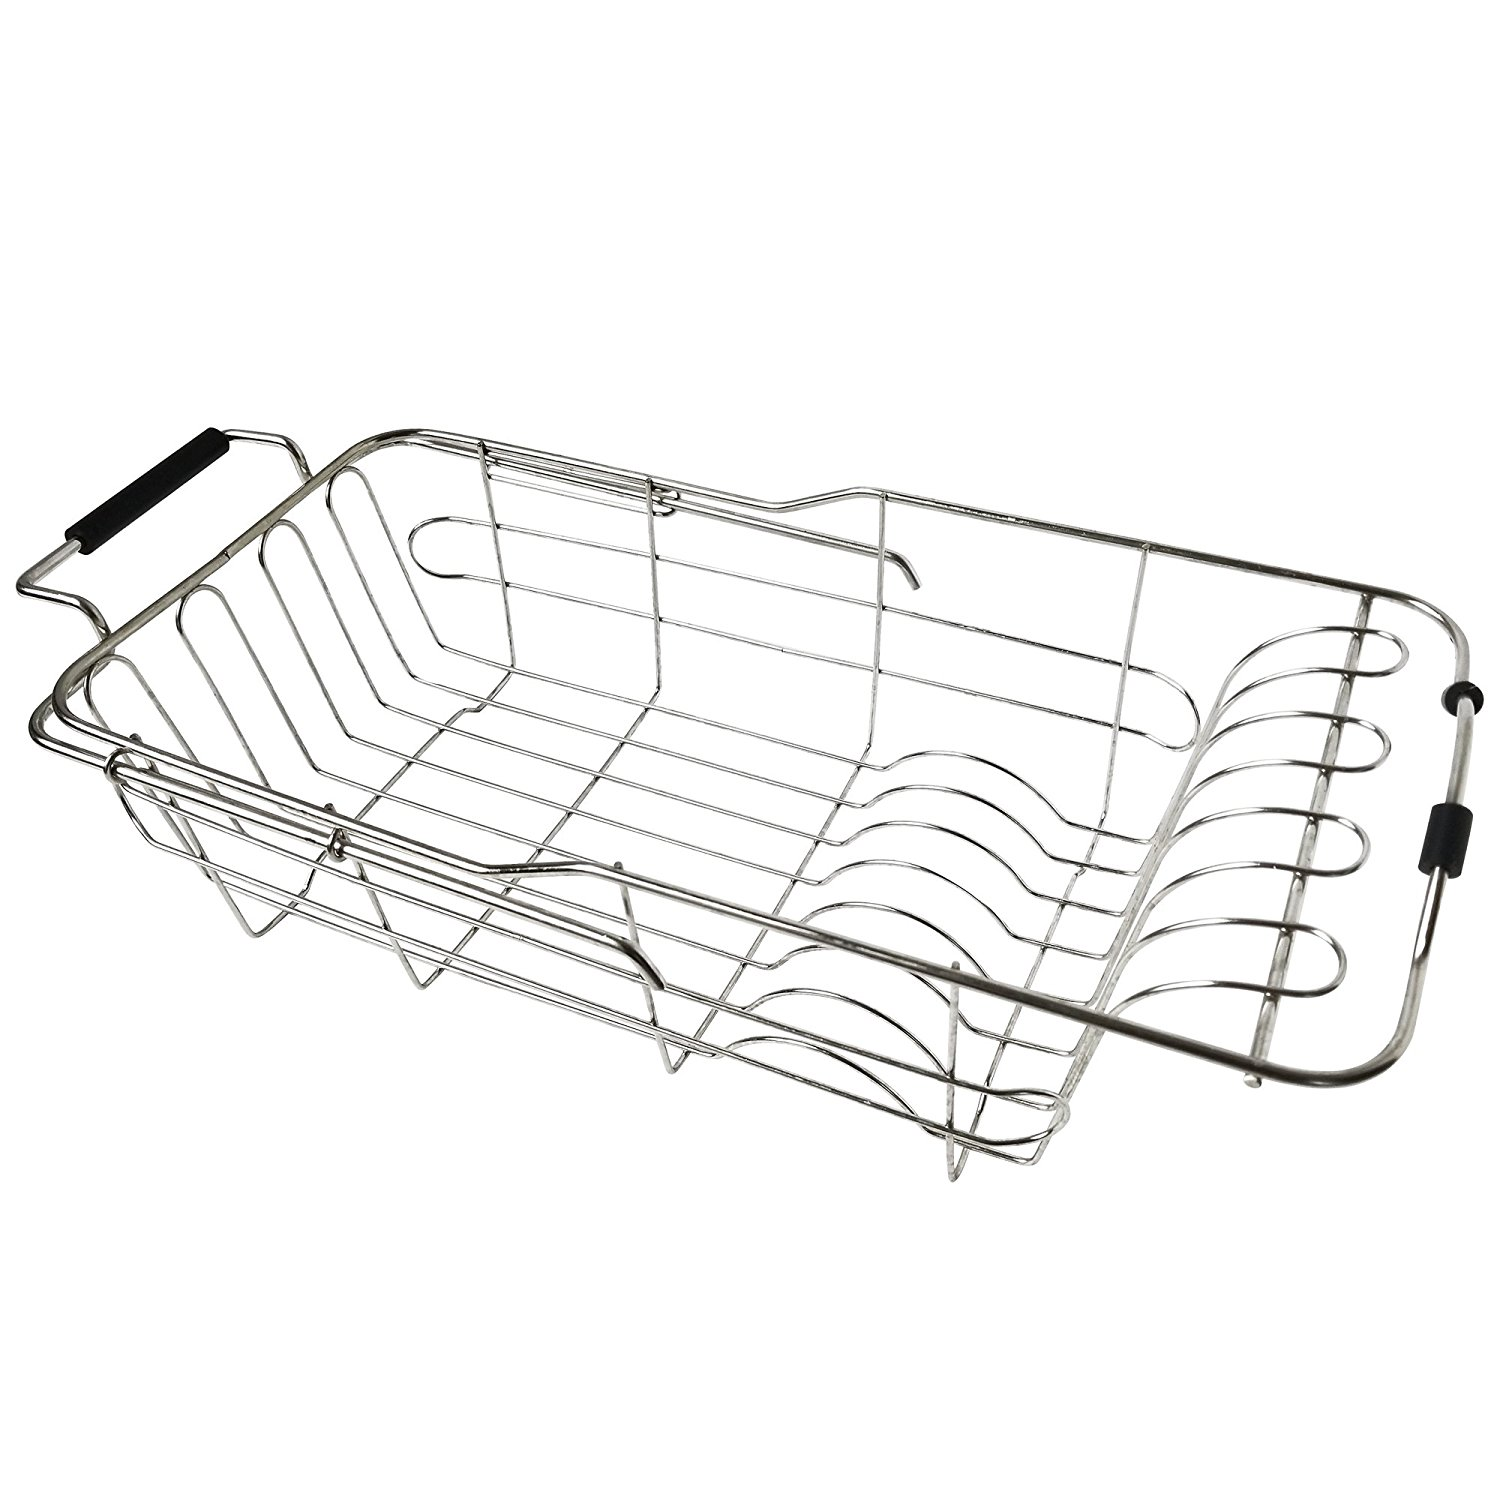 Dish Drying Rack Drainer By JHJ Homegoods In Sink Stainle...